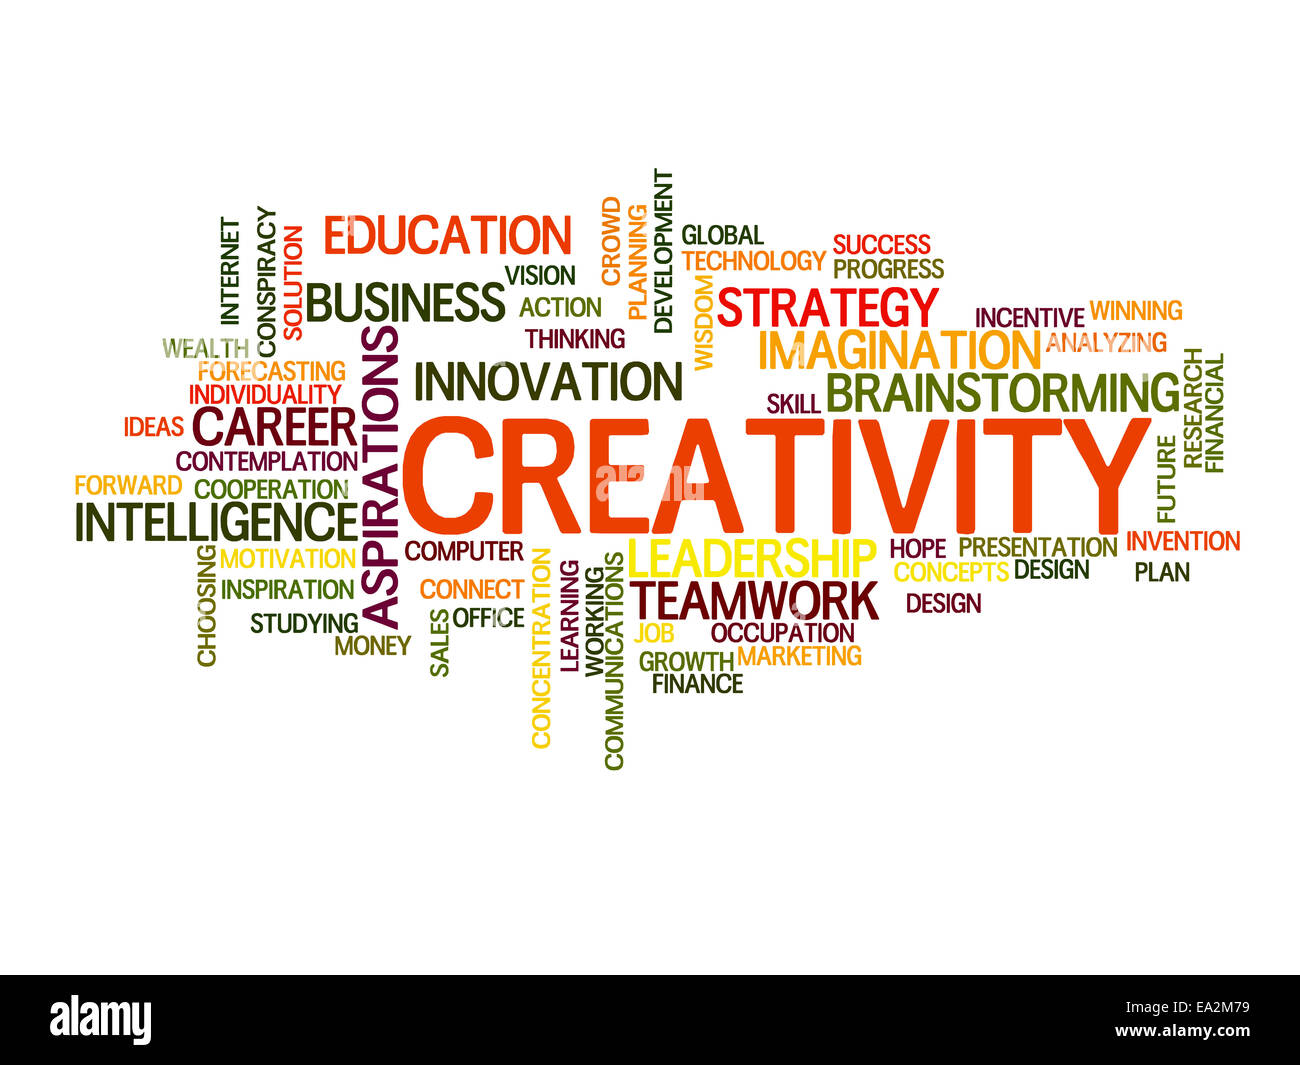 Creativity related words concept in word tag cloud - Stock Image